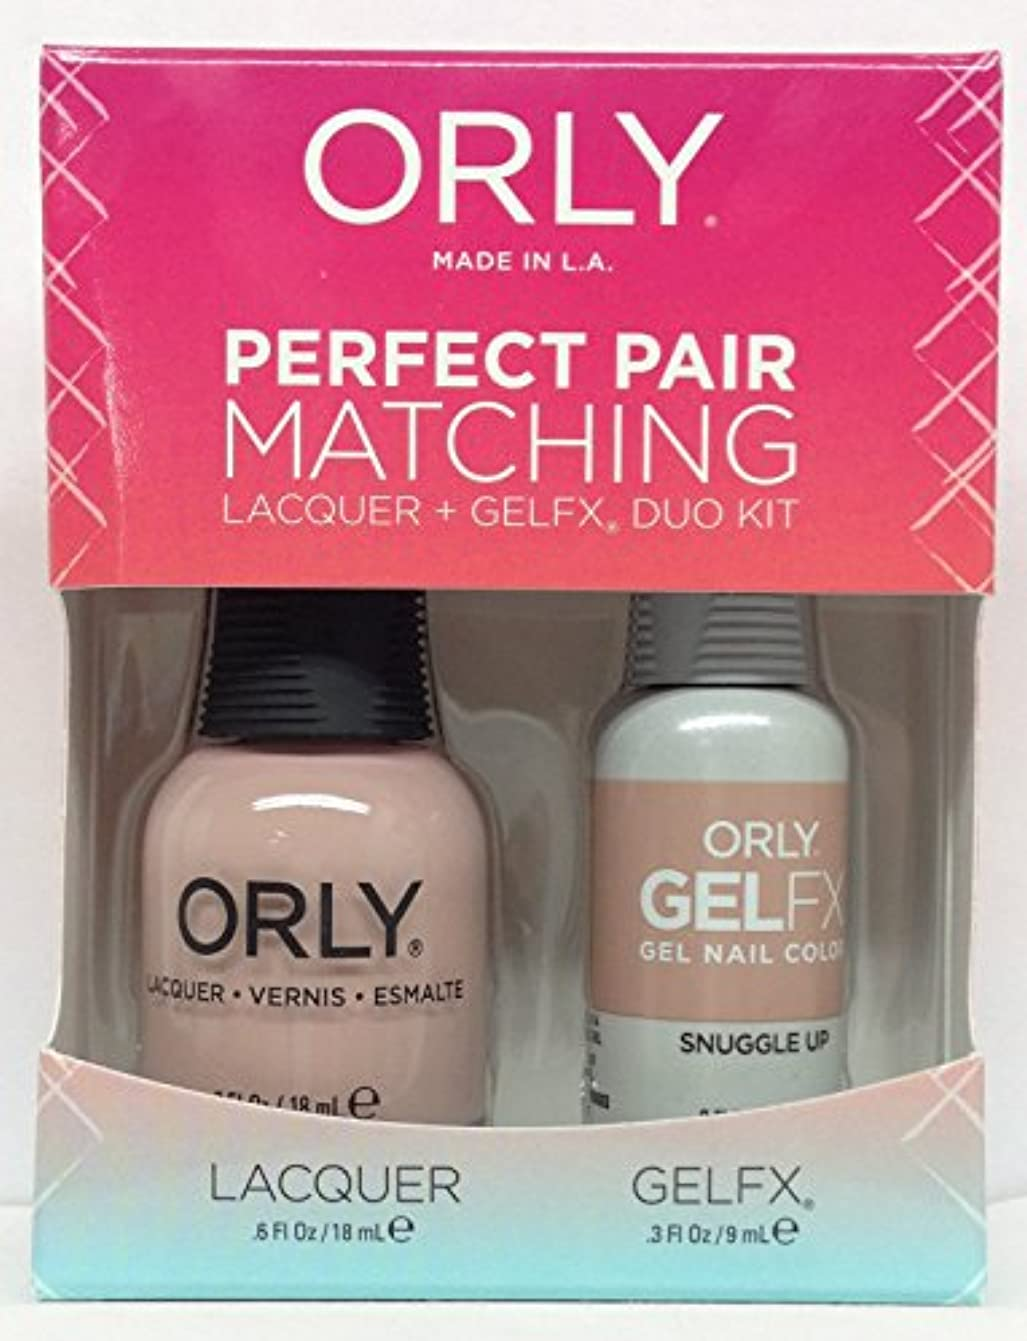 受動的自分のために長椅子Orly - Perfect Pair Matching Lacquer + GelFX Kit - Snuggle Up - 0.6 oz / 0.3 oz